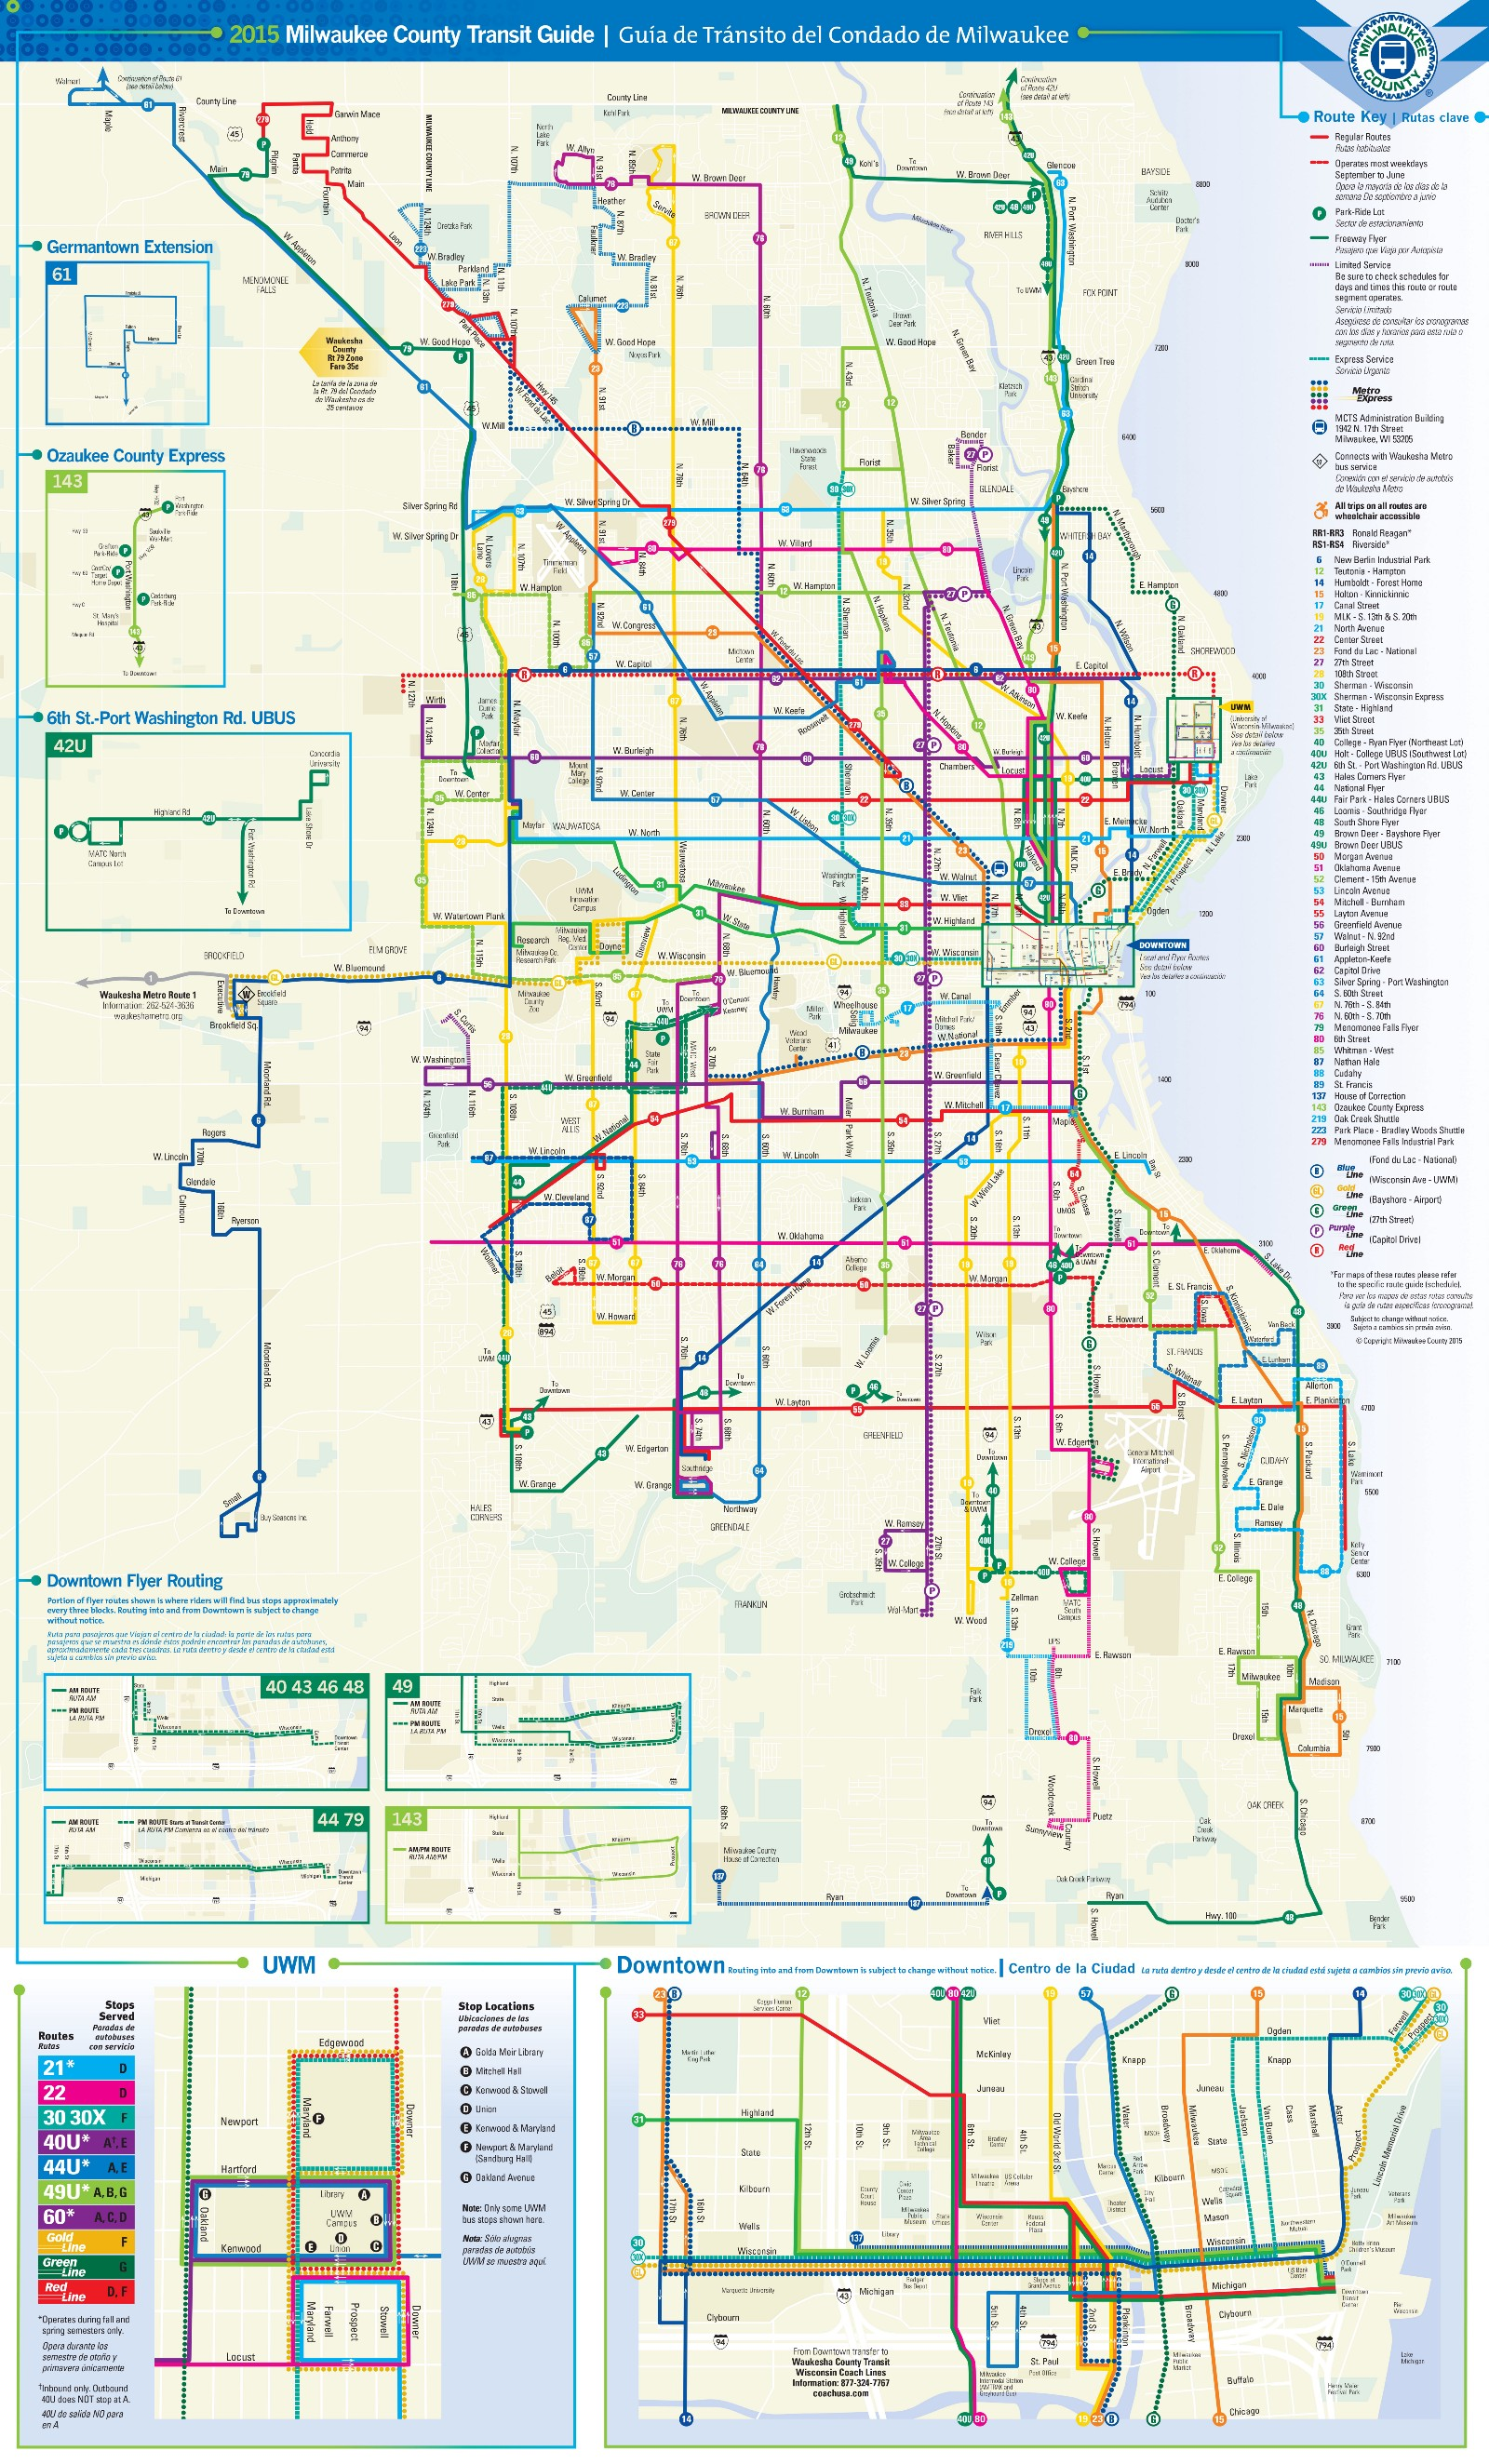 moving in milwaukee: the impact of accessible transit on jobs